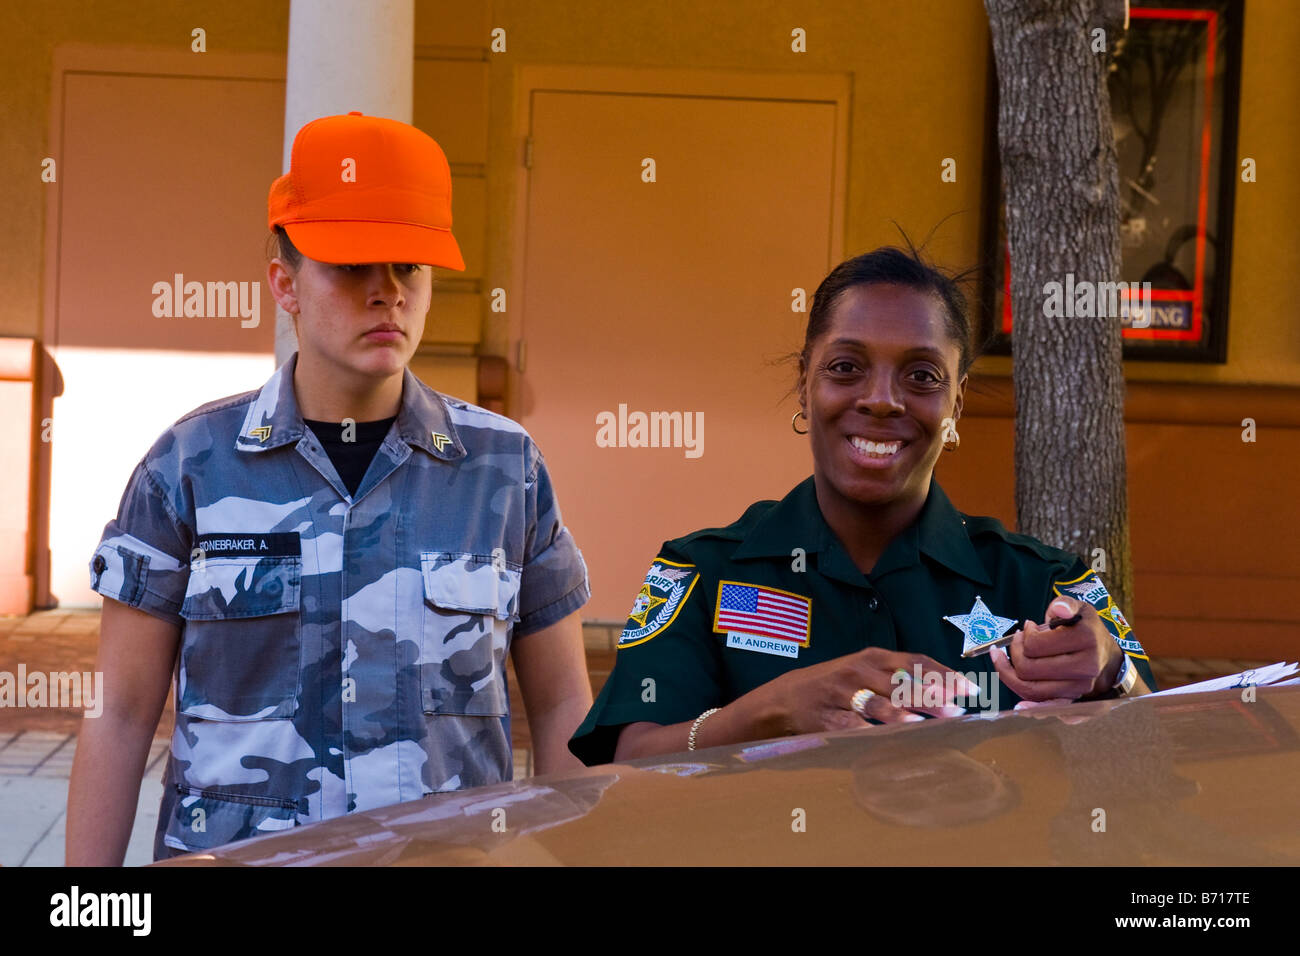 Us Police Officer Woman Stock Photos & Us Police Officer Woman Stock